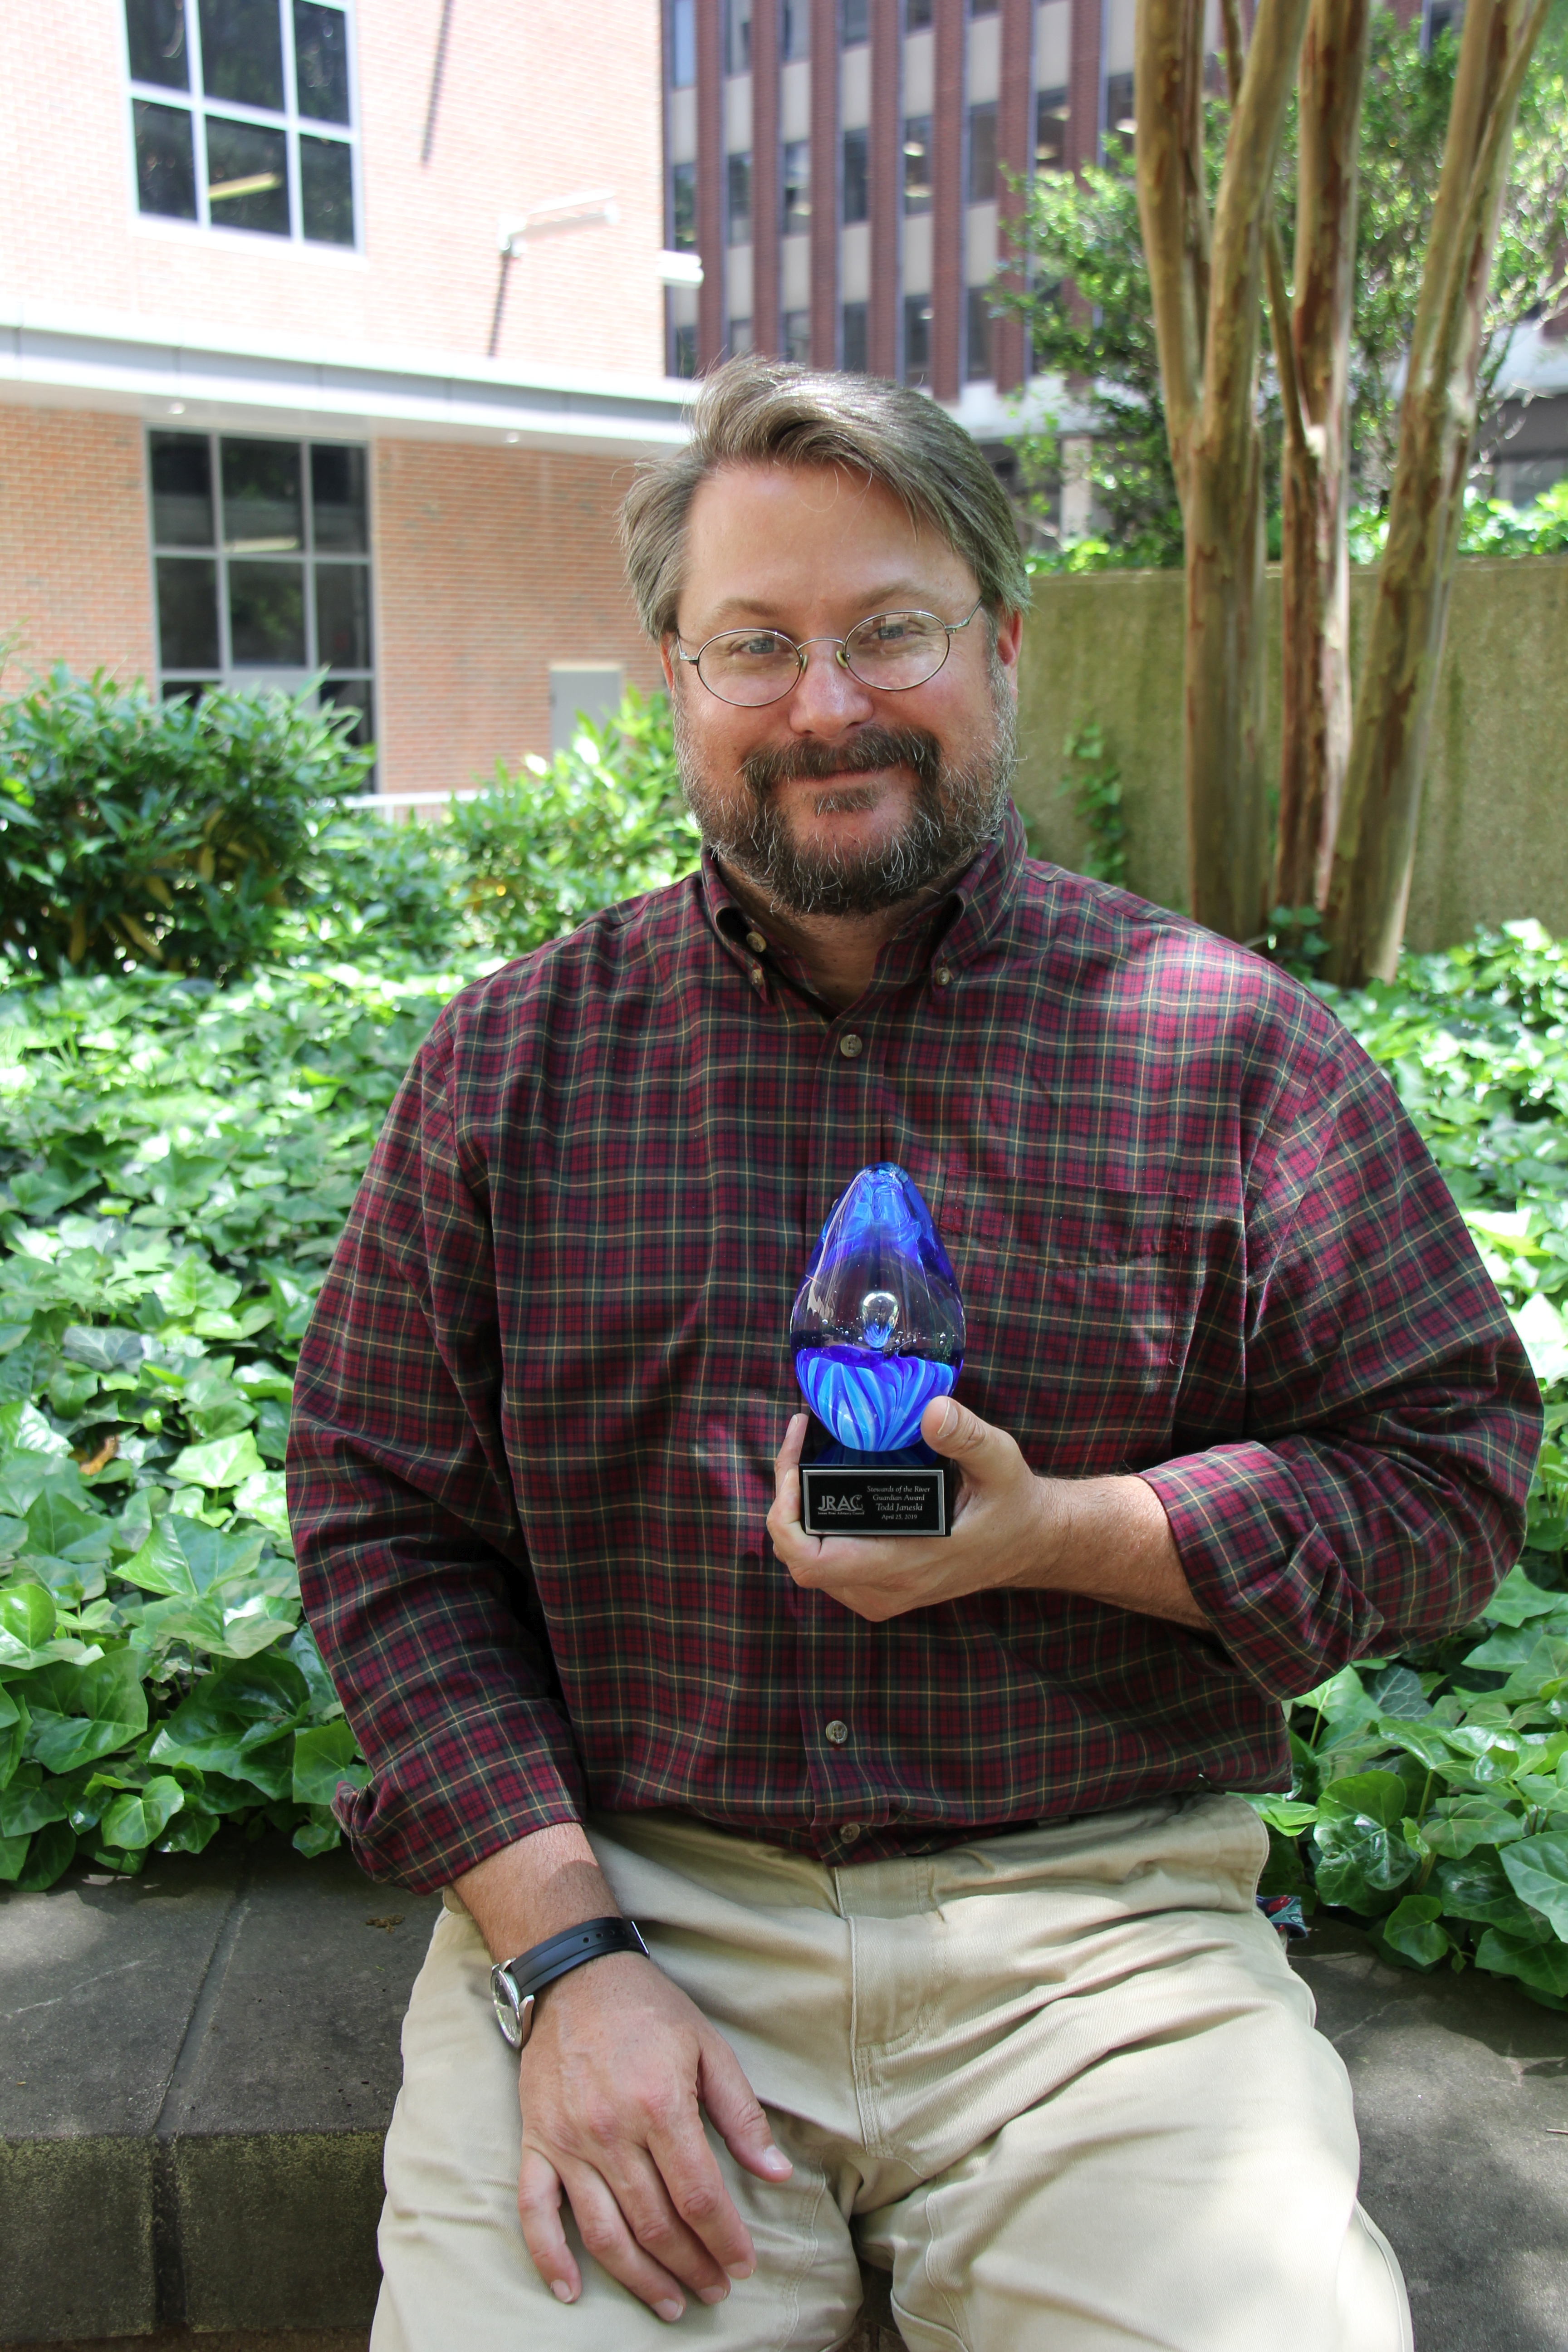 VOSRP Director Todd Janeski holding his 'Stewards of the River' award from JRAC